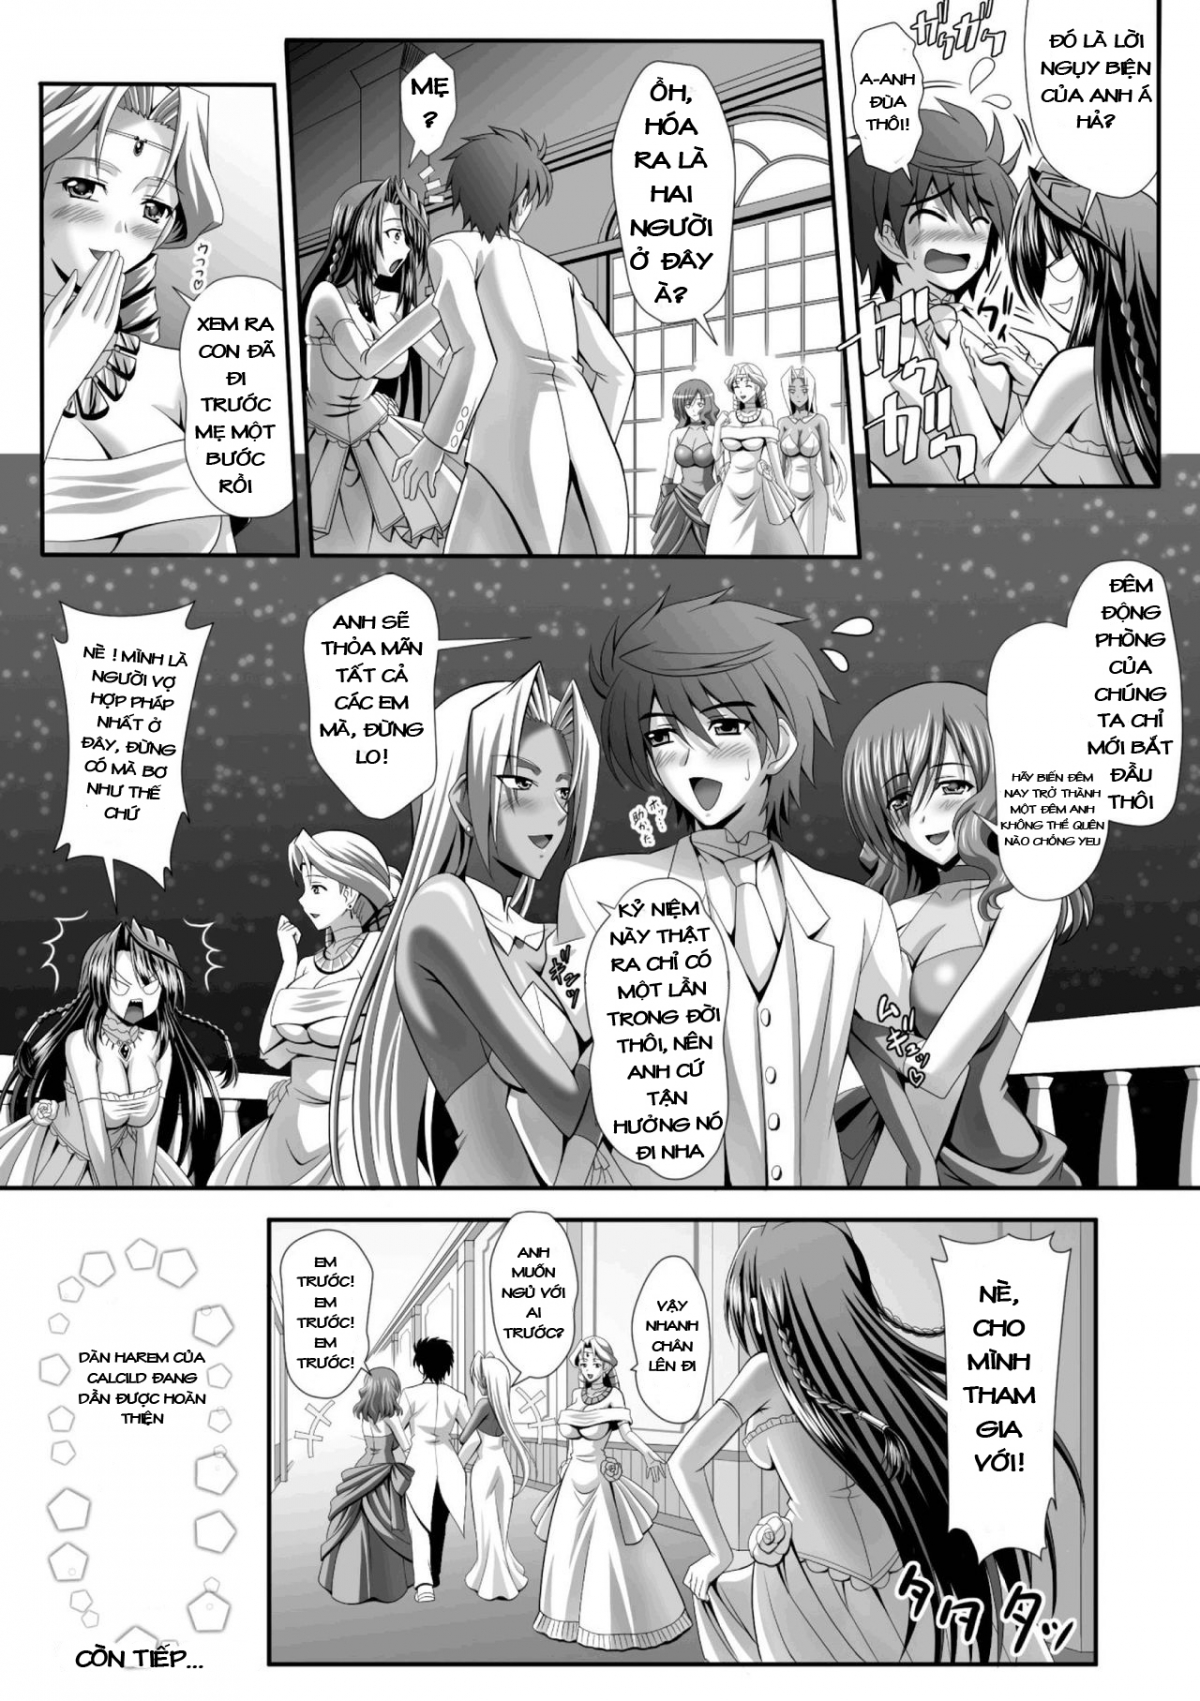 HentaiVN.net - Ảnh 28 - Hạnh phúc với dàn Harem - Harem Wedding The Sweet Honeymoon, ハーレムウェディング The Sweet Honeymoon - Chapter 1